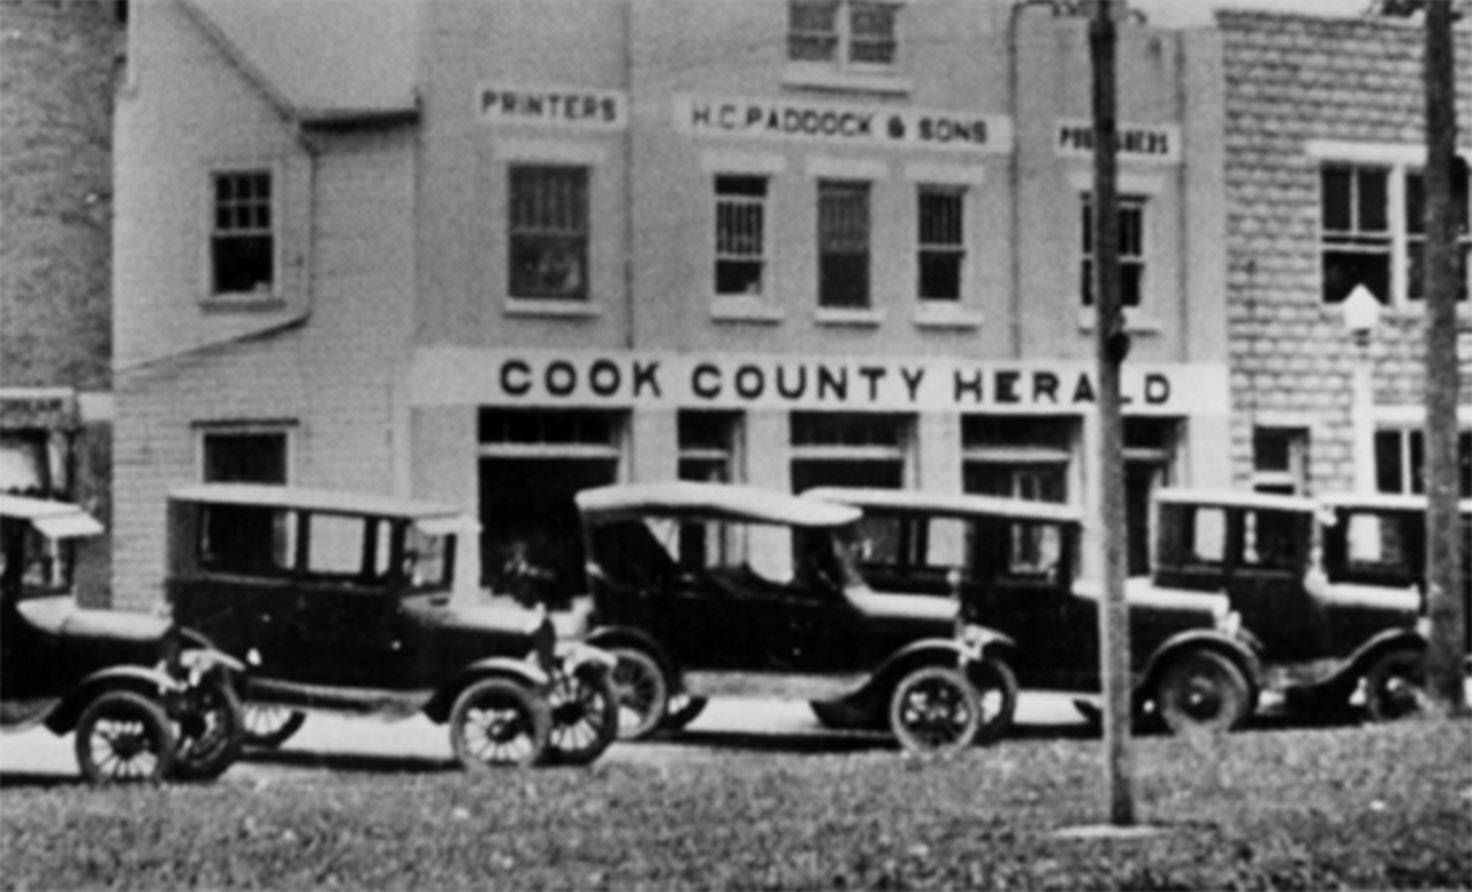 Paddock family ownership of the suburban Daily Herald and its predecessor newspapers dates back four generations to Dec. 15, 1898.